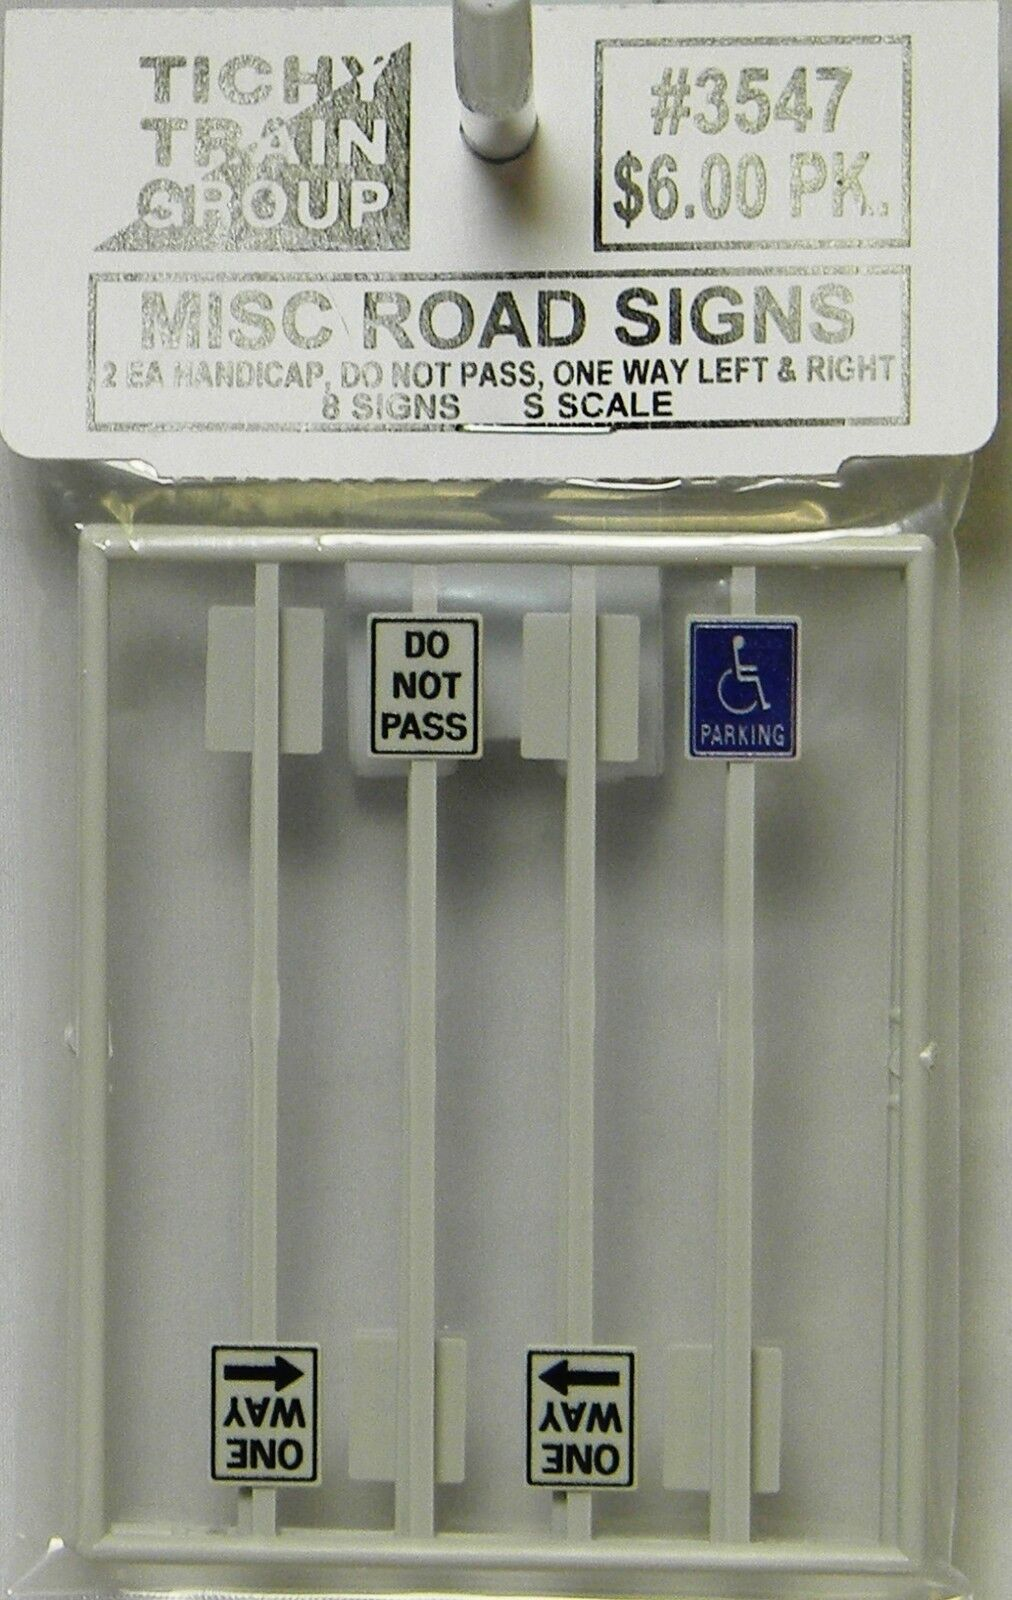 NIB S Tichy 3547 Miscellaneous Road Signs 8 Pcs